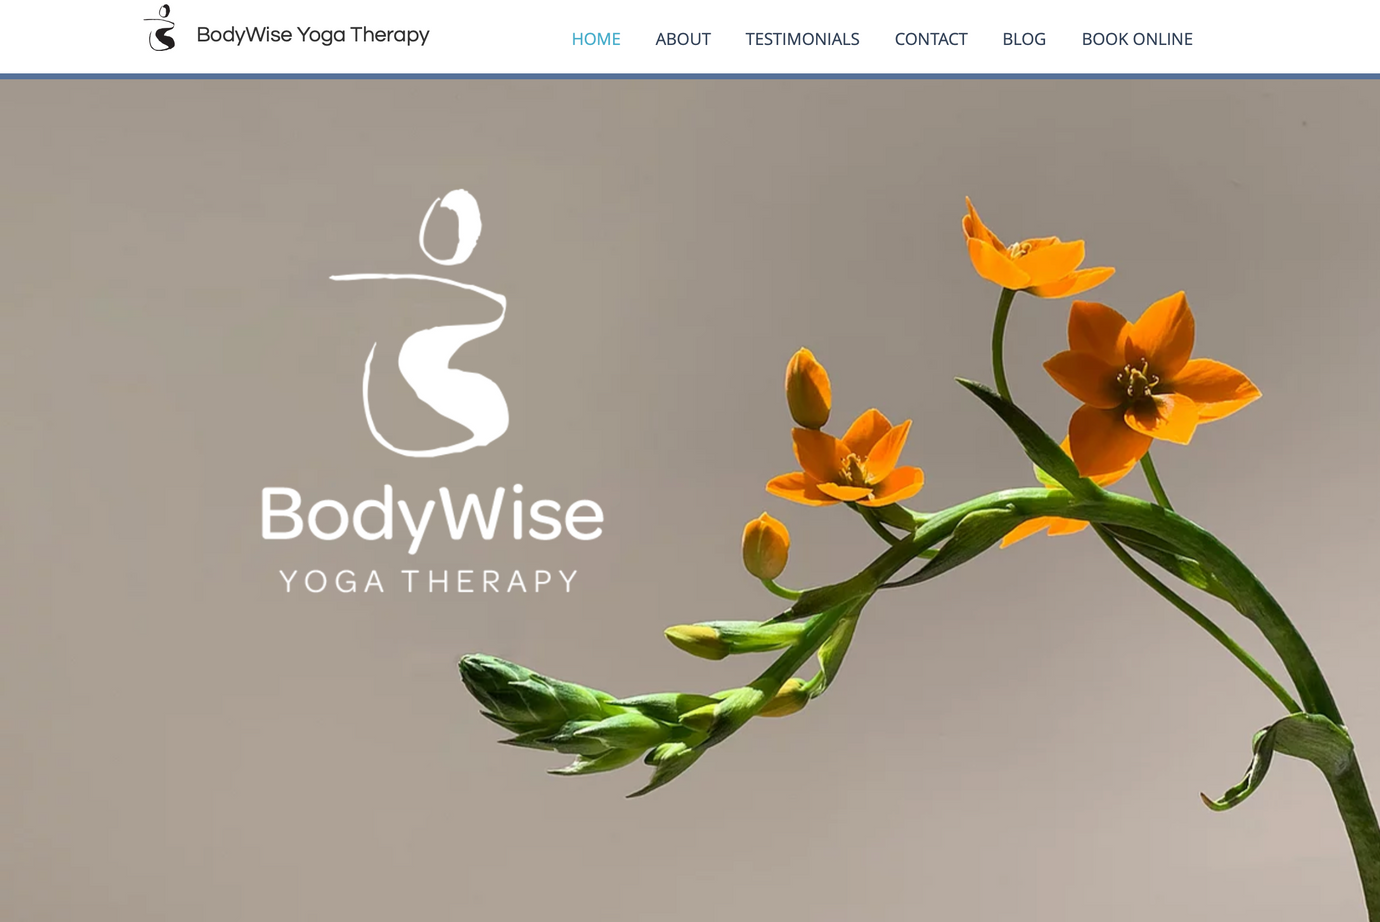 BodyWise Yoga Therapy